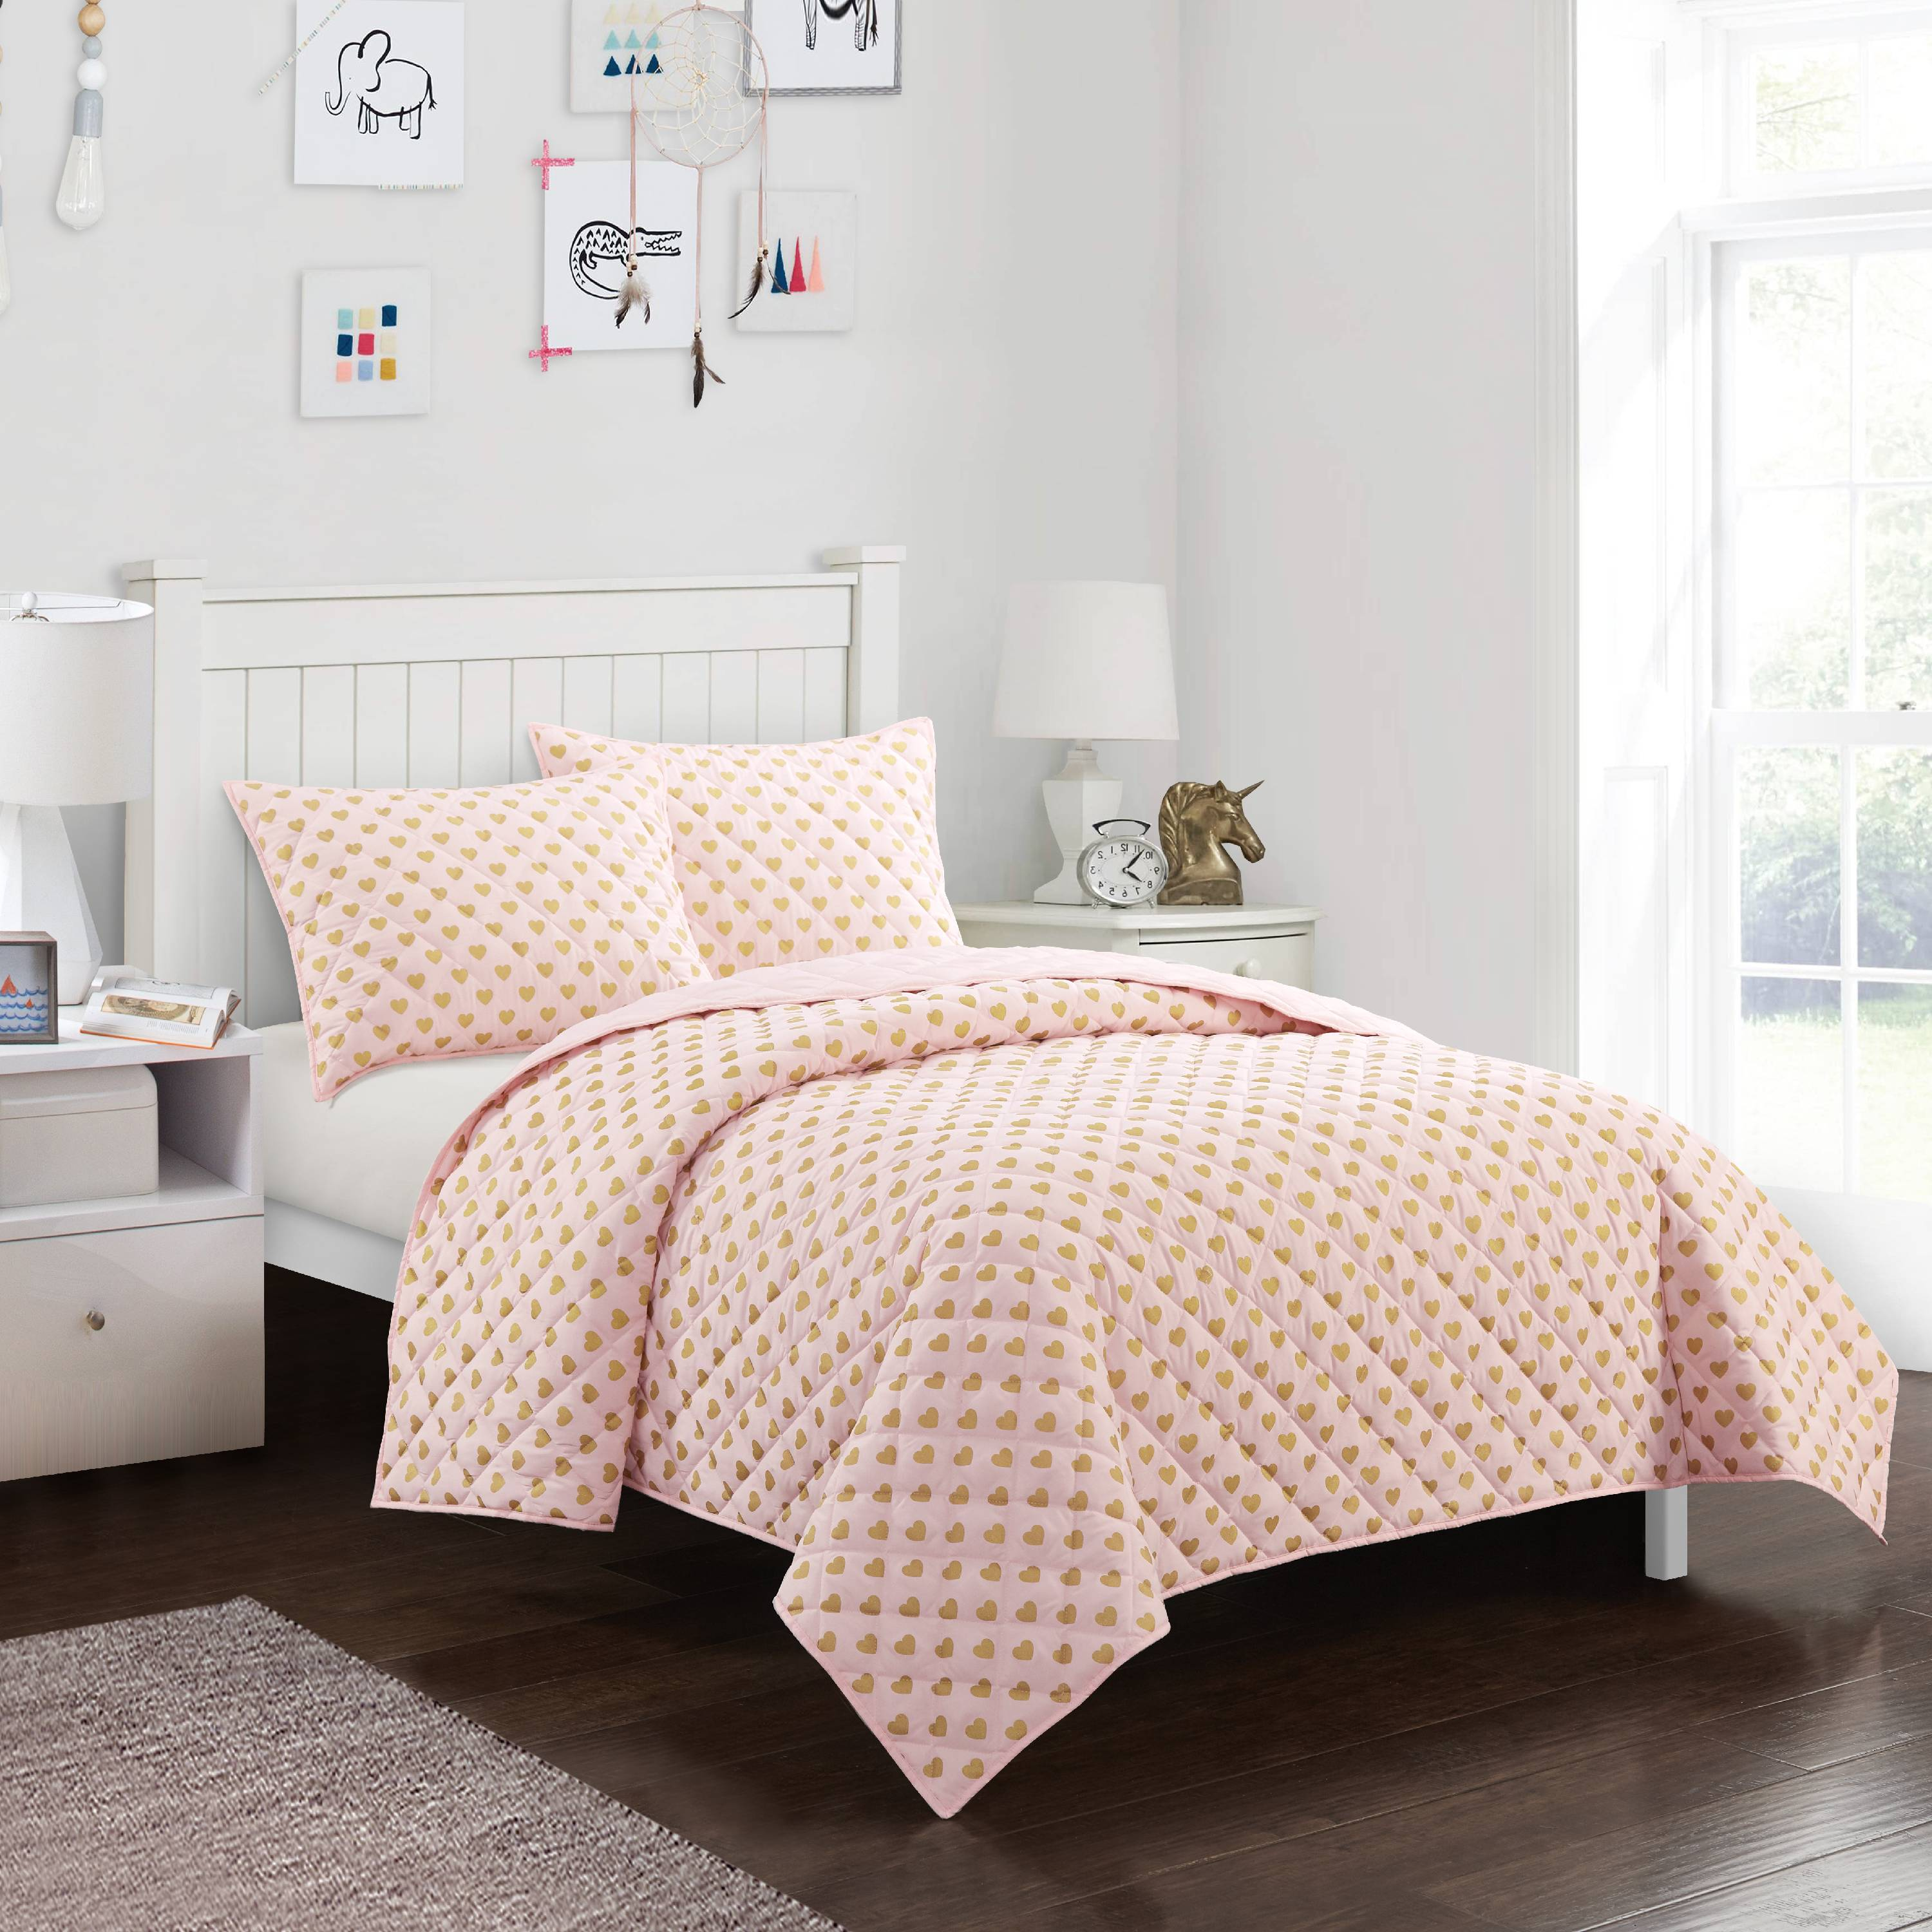 Mainstays Kids Metallic Heart Printed Quilt Set